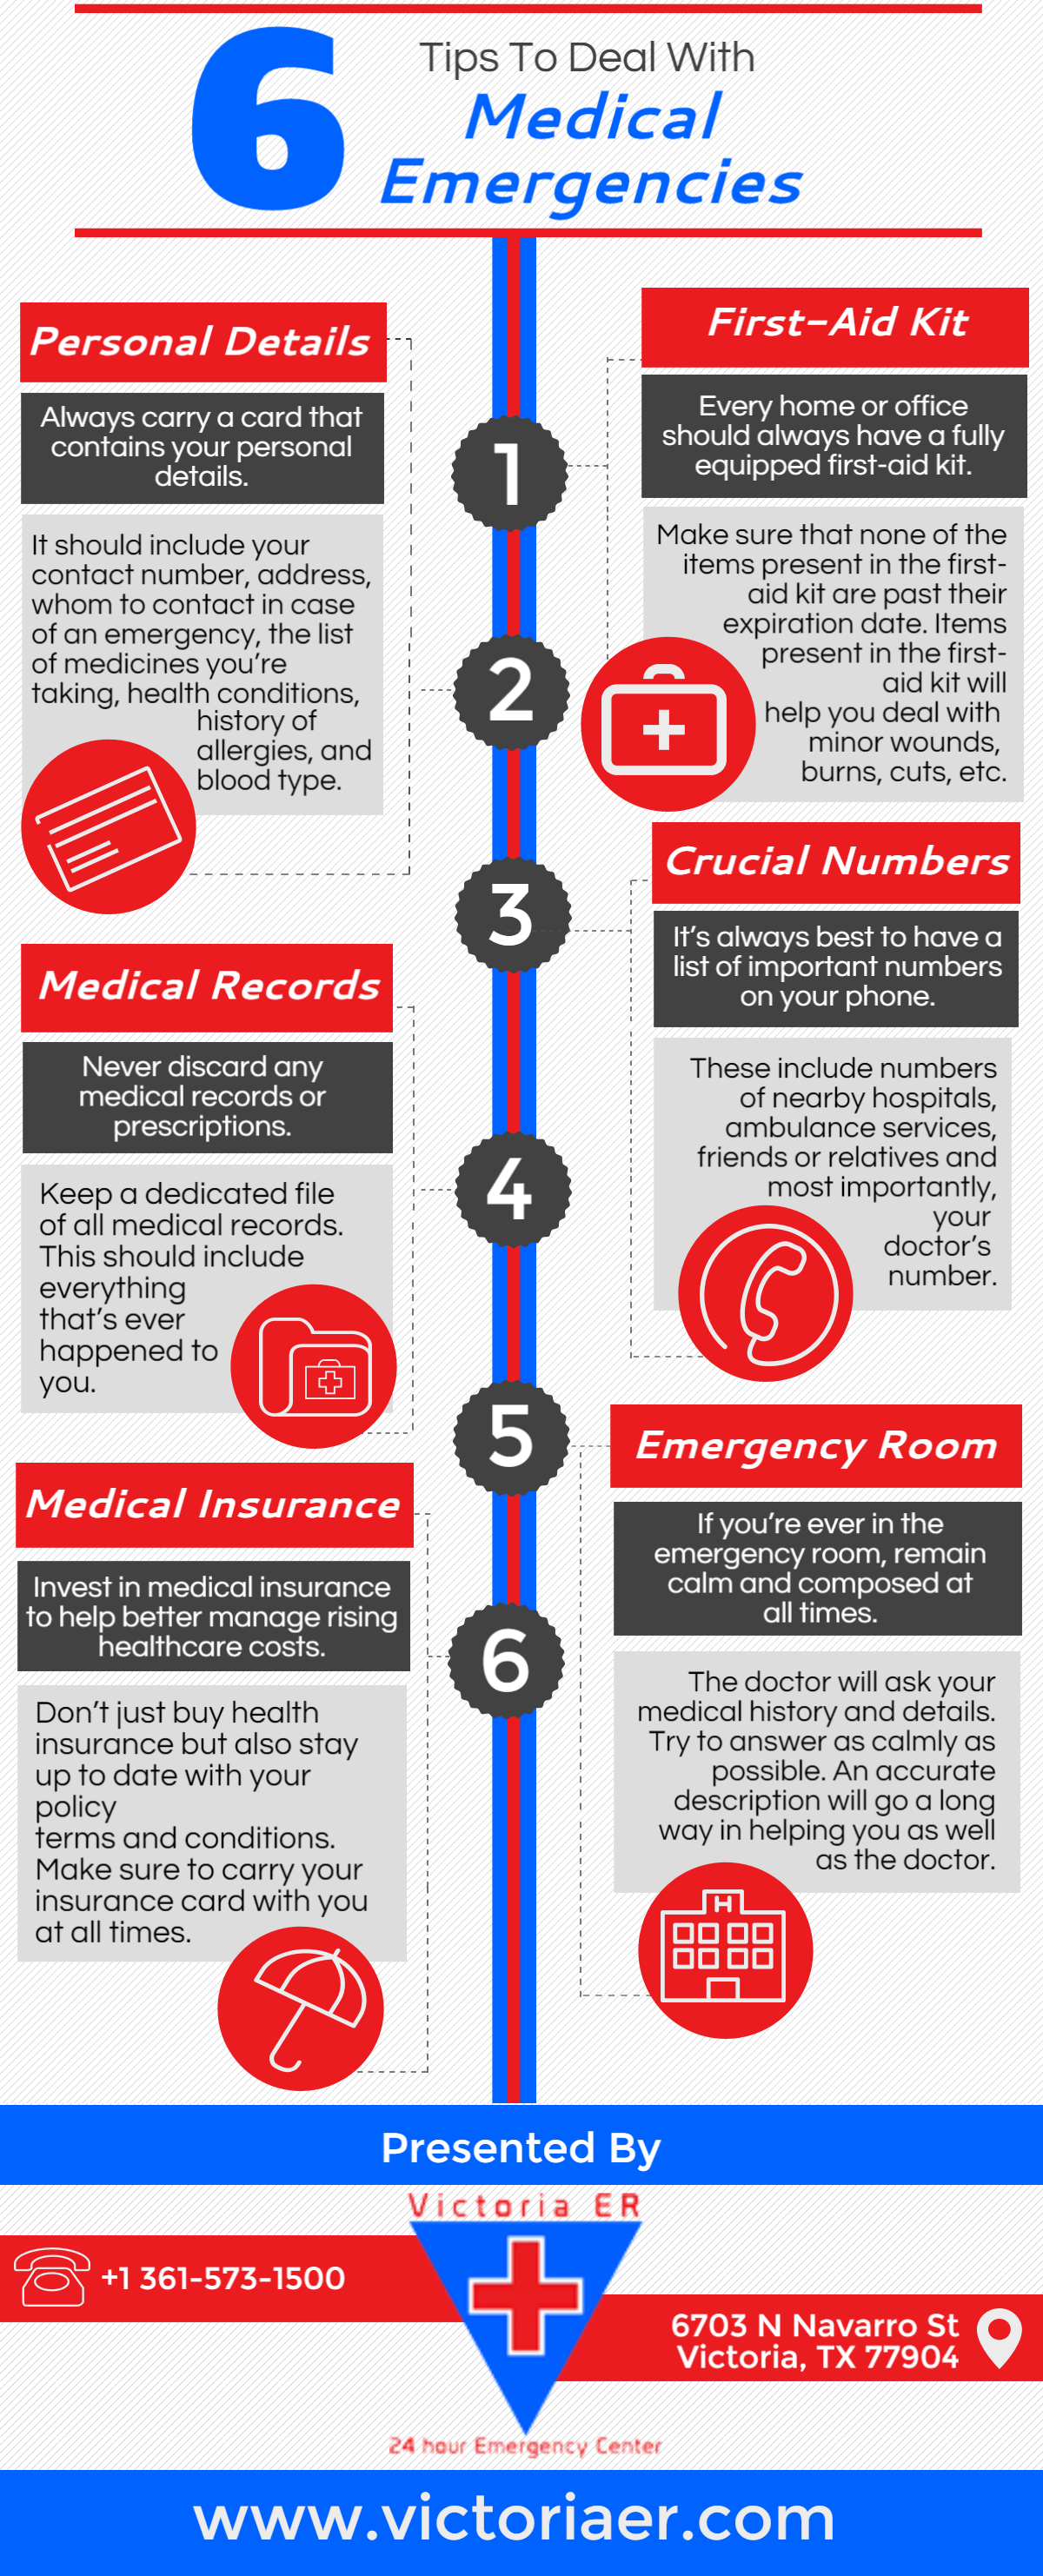 Tips To Deal With Medical Emergencies